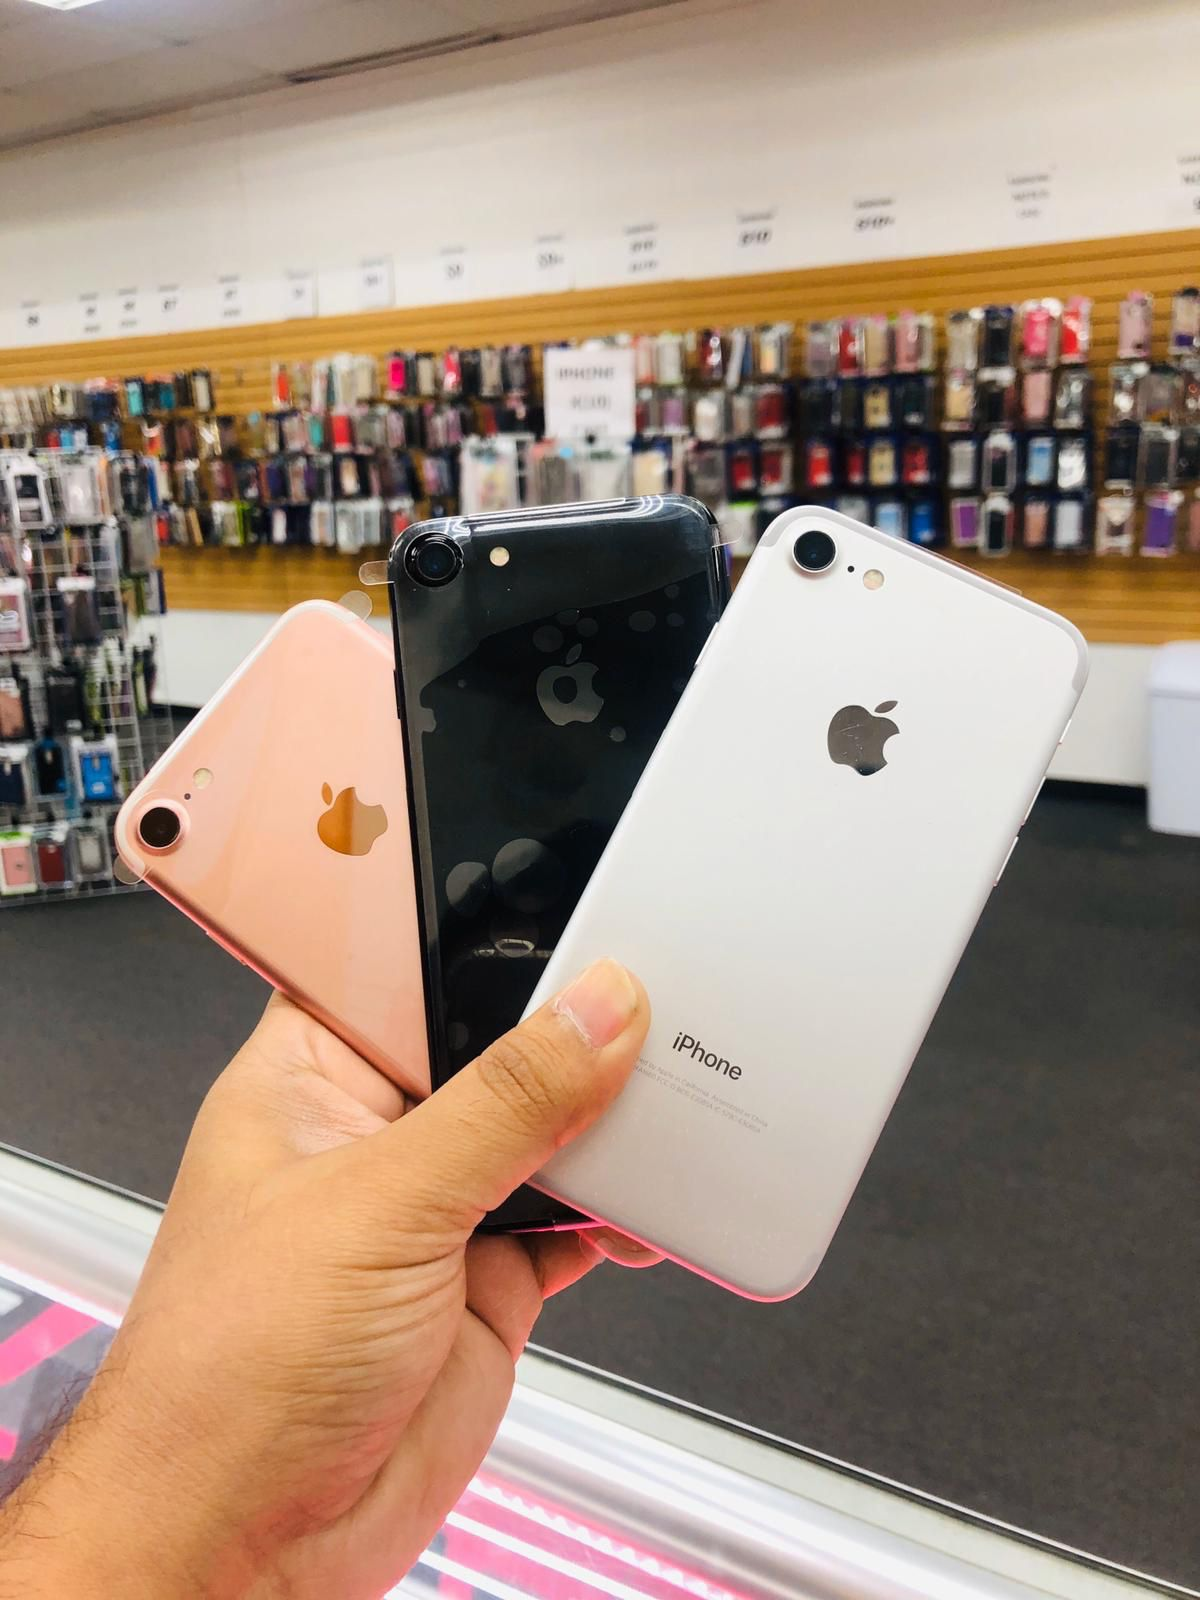 iPhone 7 32GB Unlocked ! we are a store